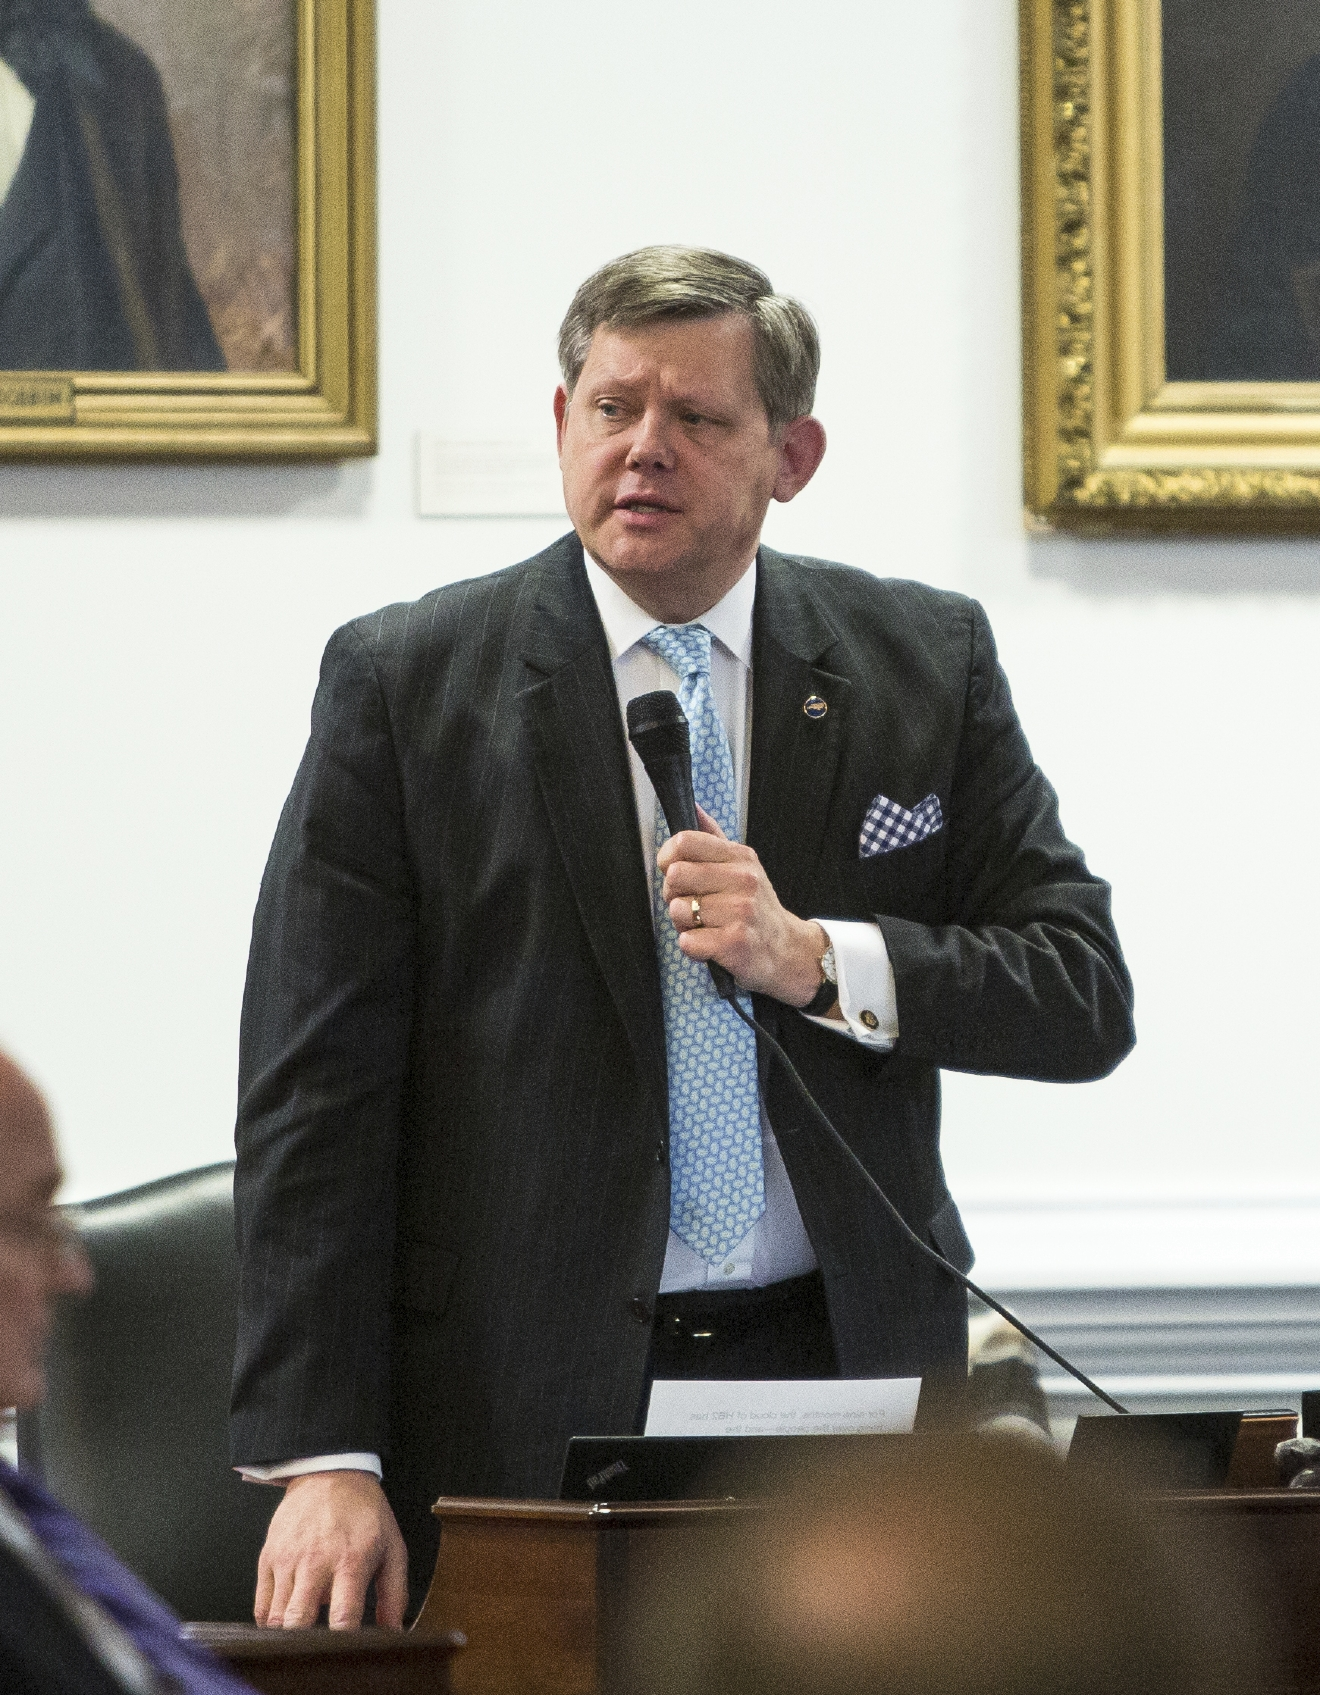 State Sen. Sentor Mike Woodard speaks on the floor of the senate during a special session of the North Carolina General Assembly called to consider repeal of NC HB2 in Raleigh, N.C., Wednesday, Dec. 21, 2016. North Carolina's legislature reconvened to see if enough lawmakers are willing to repeal a 9-month-old law that limited LGBT rights, including which bathrooms transgender people can use in public schools and government buildings.  (AP Photo/Ben McKeown)